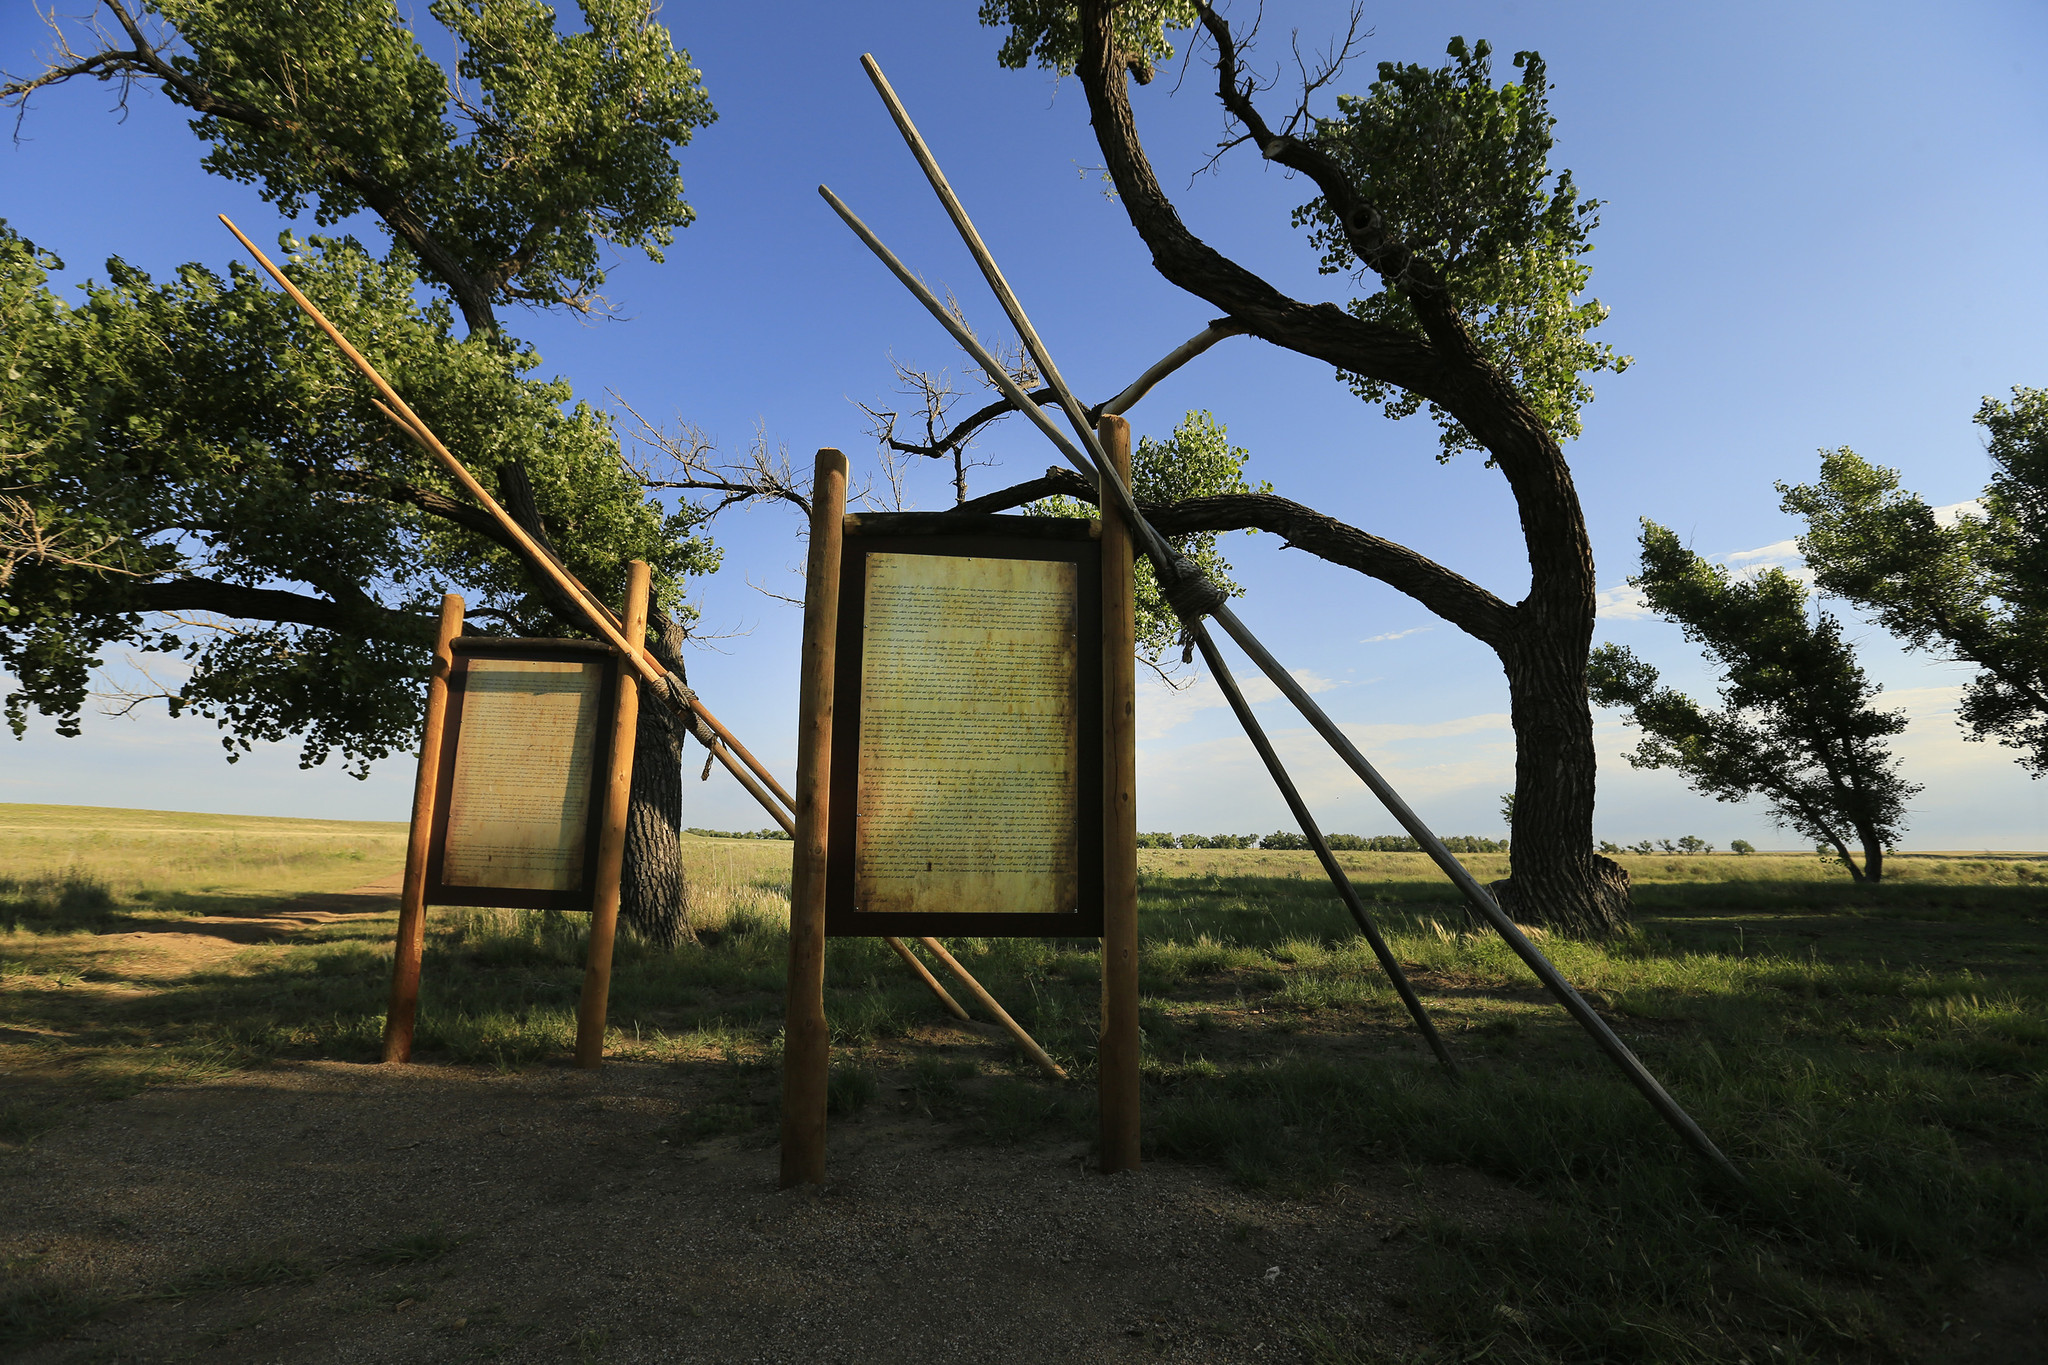 Letters written by witnesses of the Sand Creek Massacre are on display.